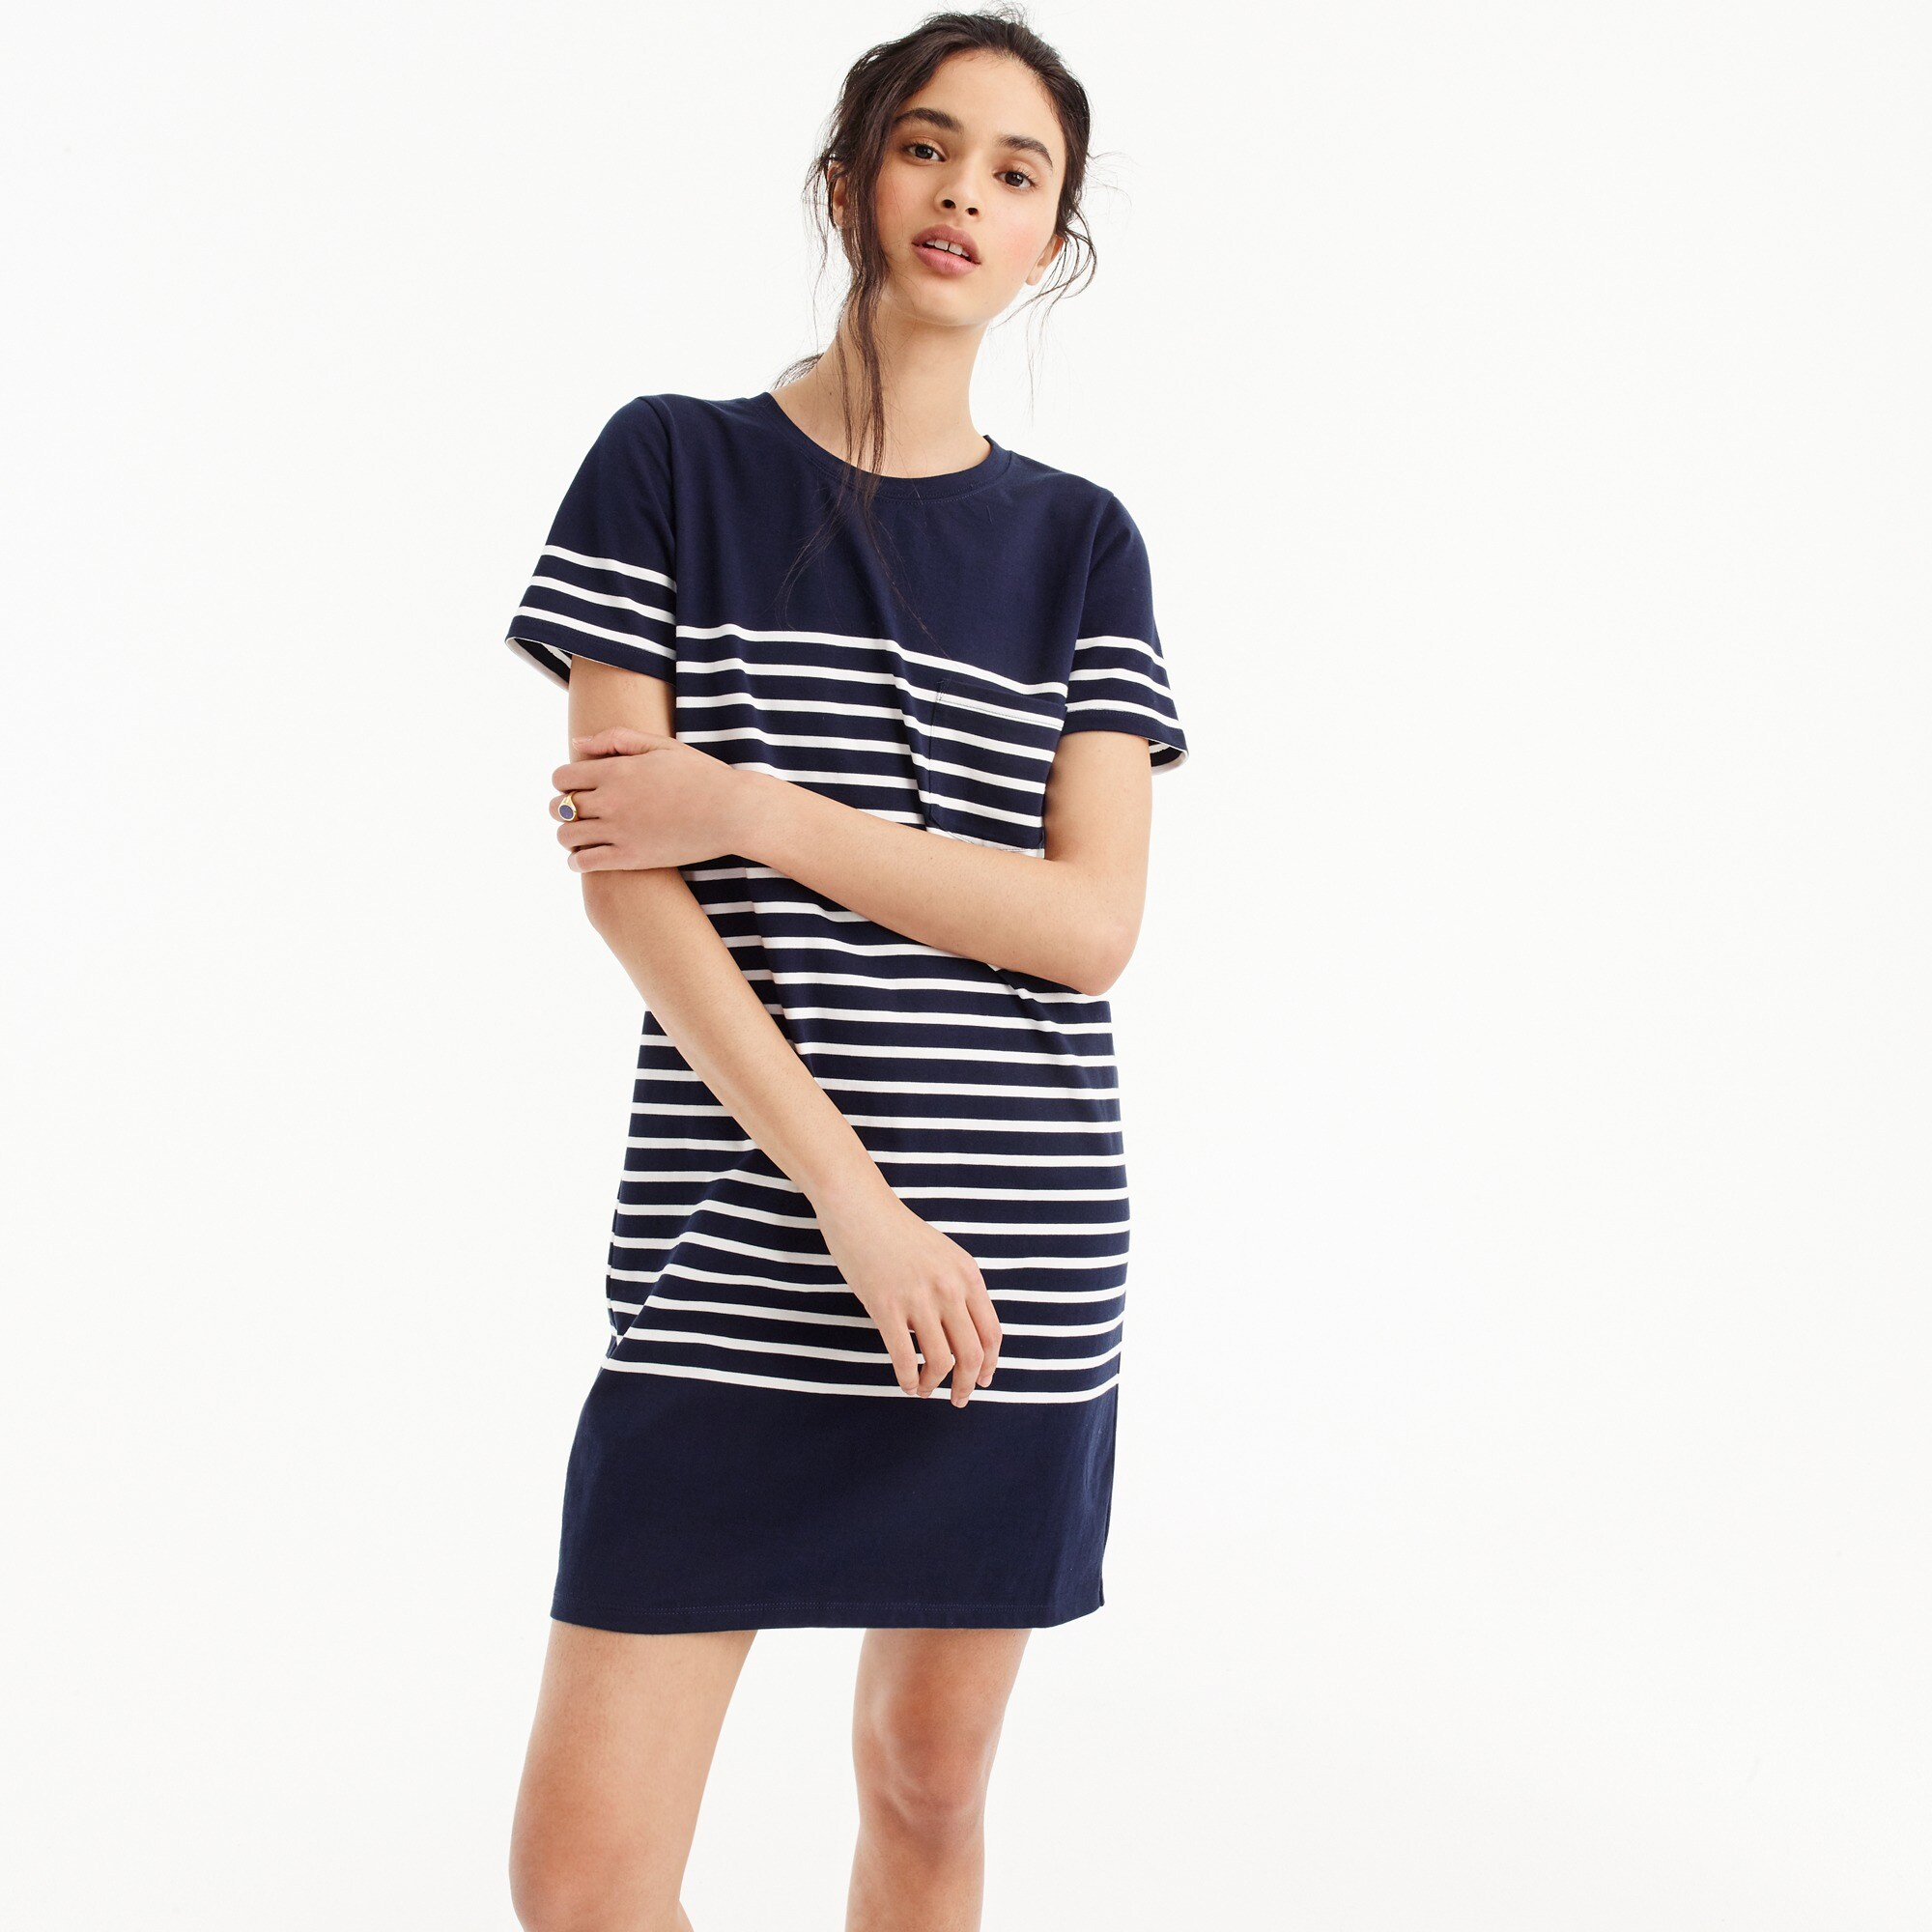 women's t-shirt dress in nautical stripe - women's swimwear